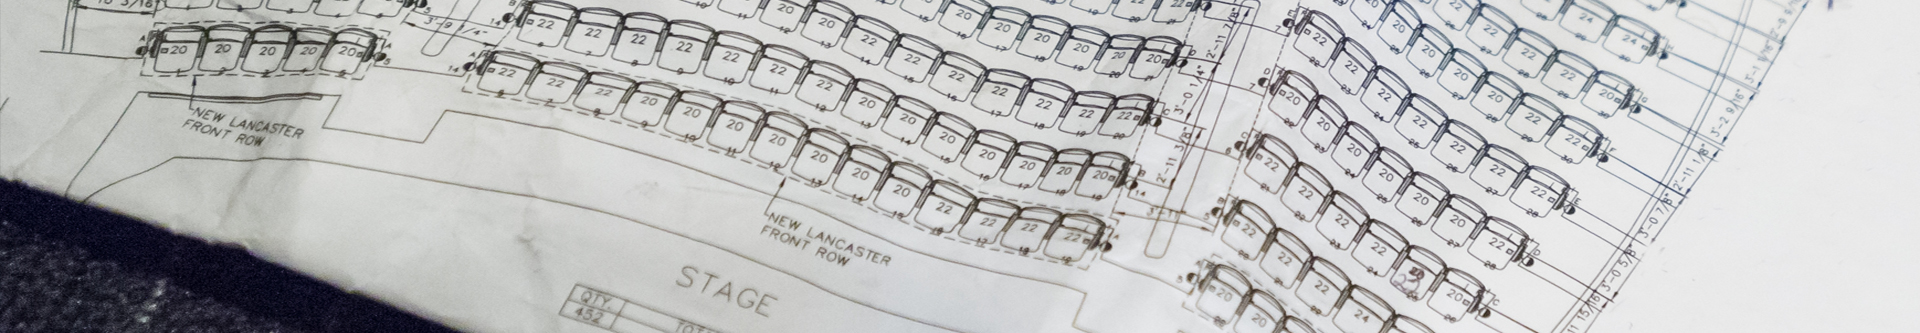 Theater Rental Technical Drawing of Seating